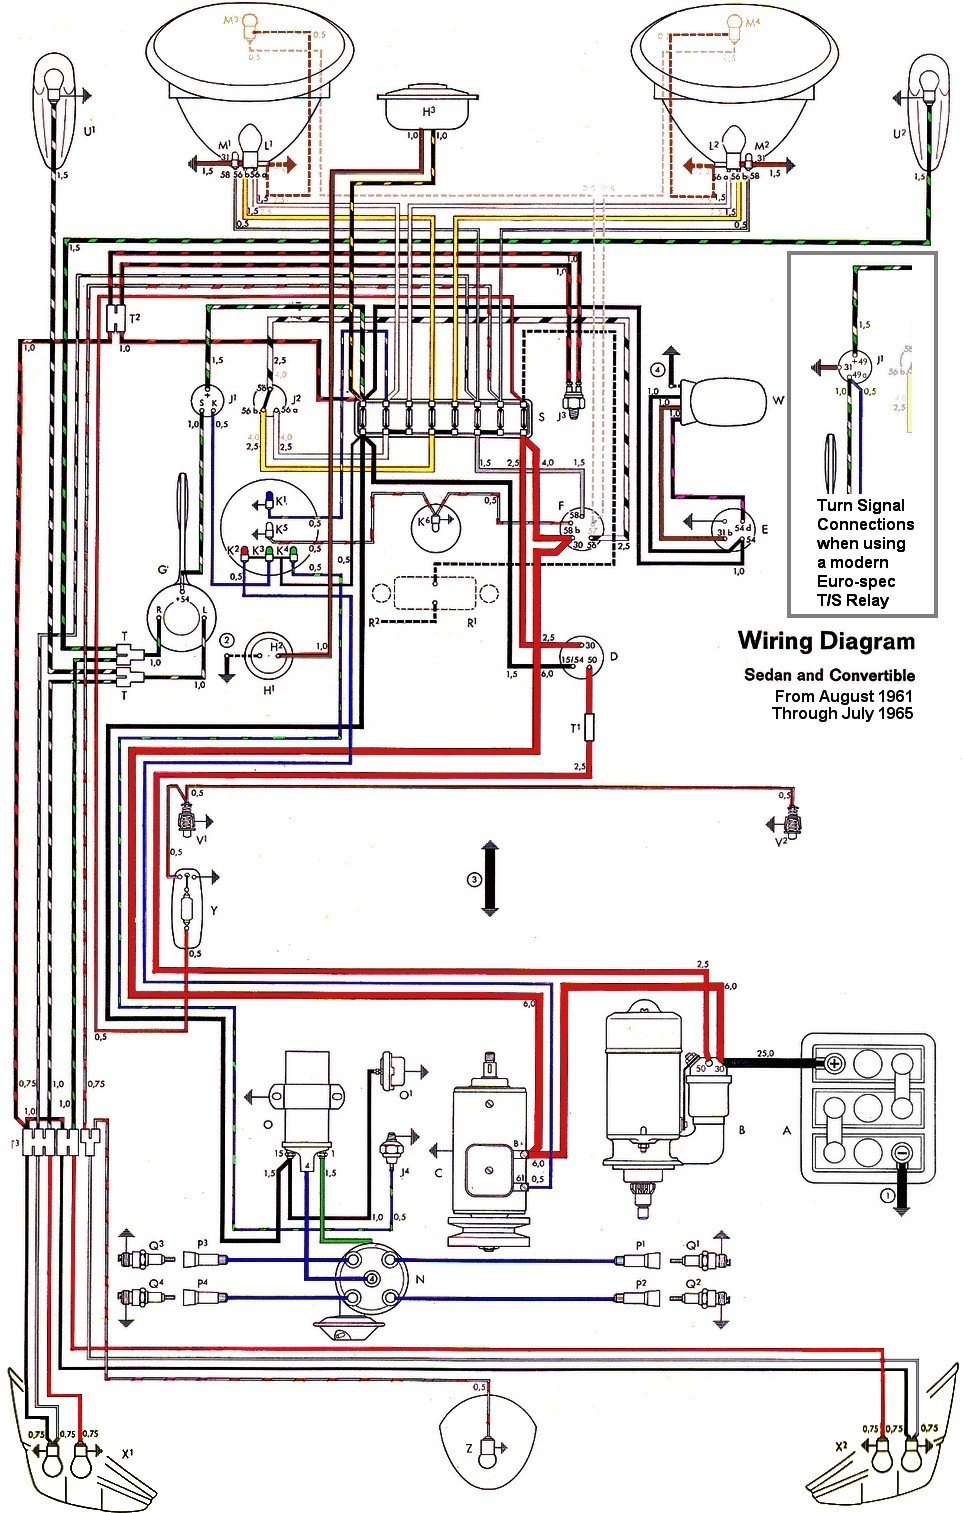 62 vw beetle wiring diagram wiring diagram pictures u2022 rh mapavick co uk  VW Trike Wiring Harness 1973 VW Super Beetle Wiring Harness